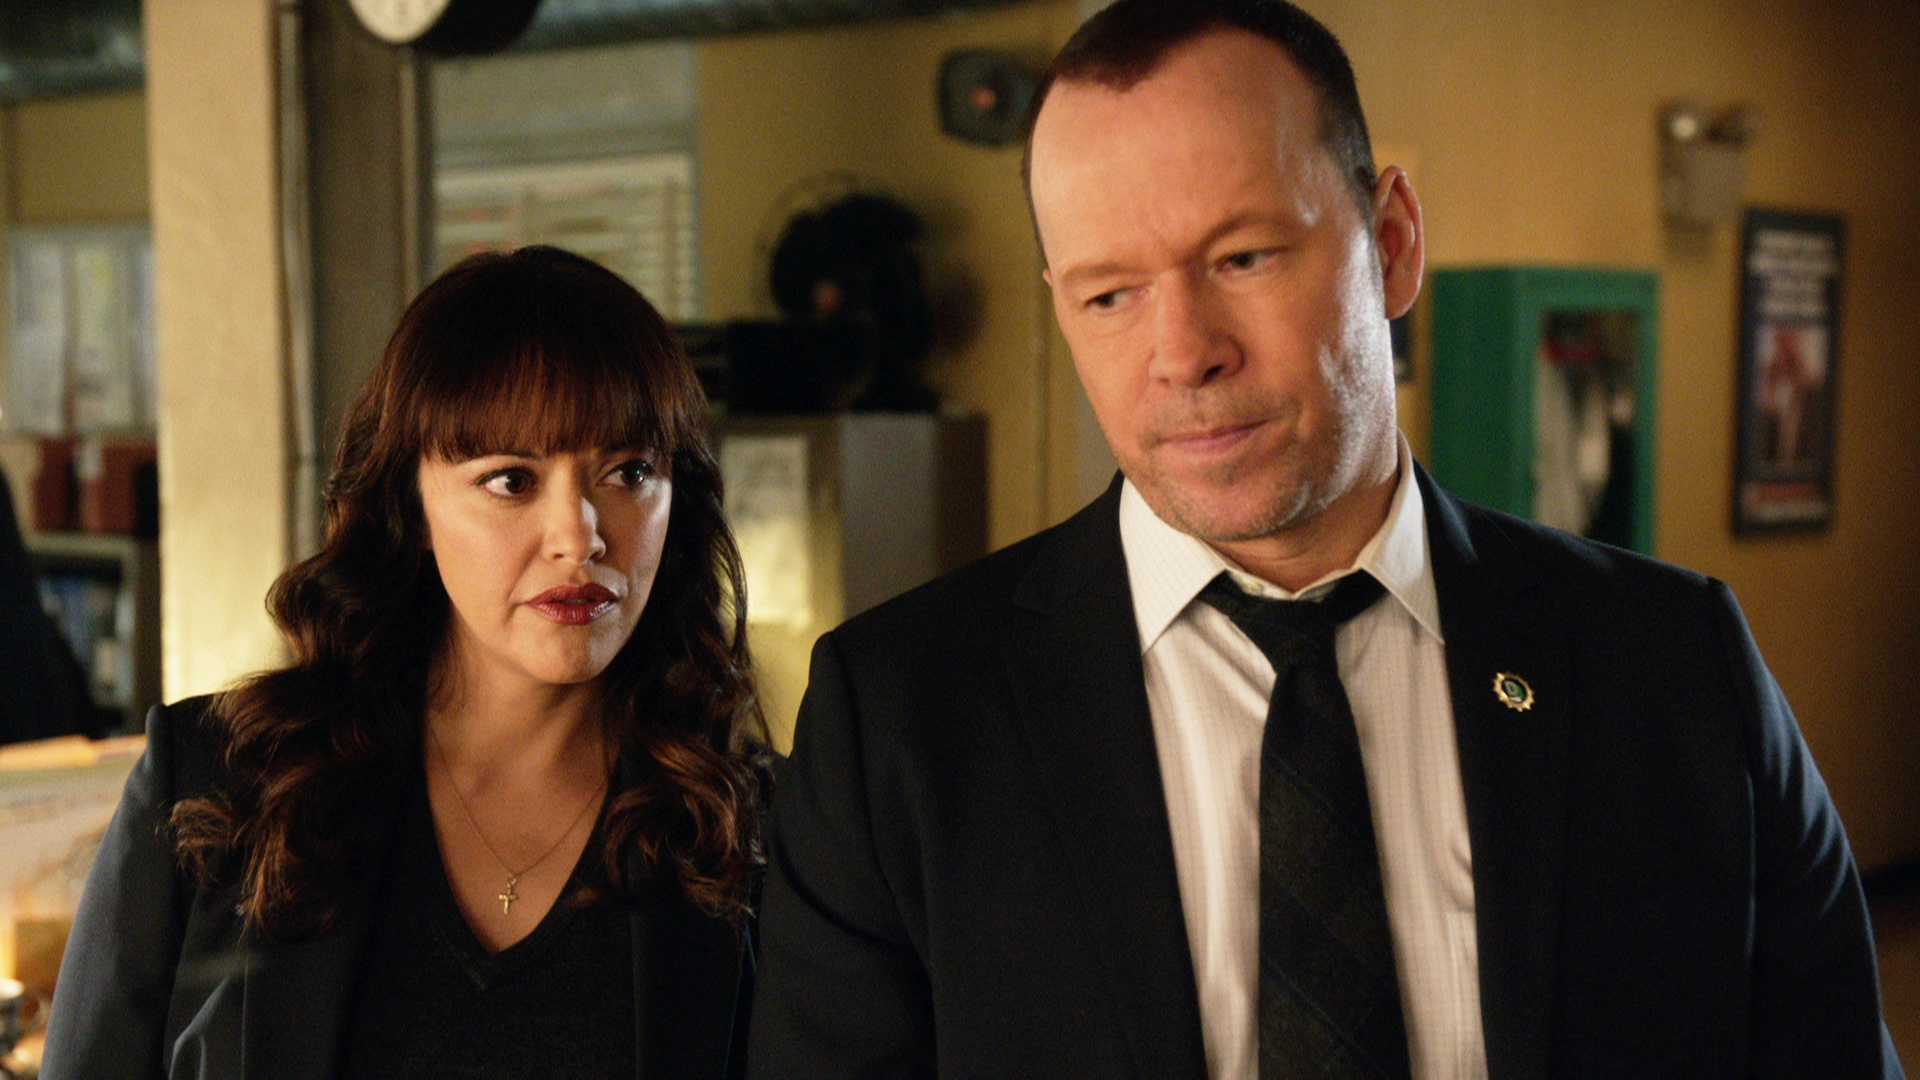 Marisa Ramirez as Maria Baez and Donnie Wahlberg as Danny Reagan stand next to each other on Blue Bloods